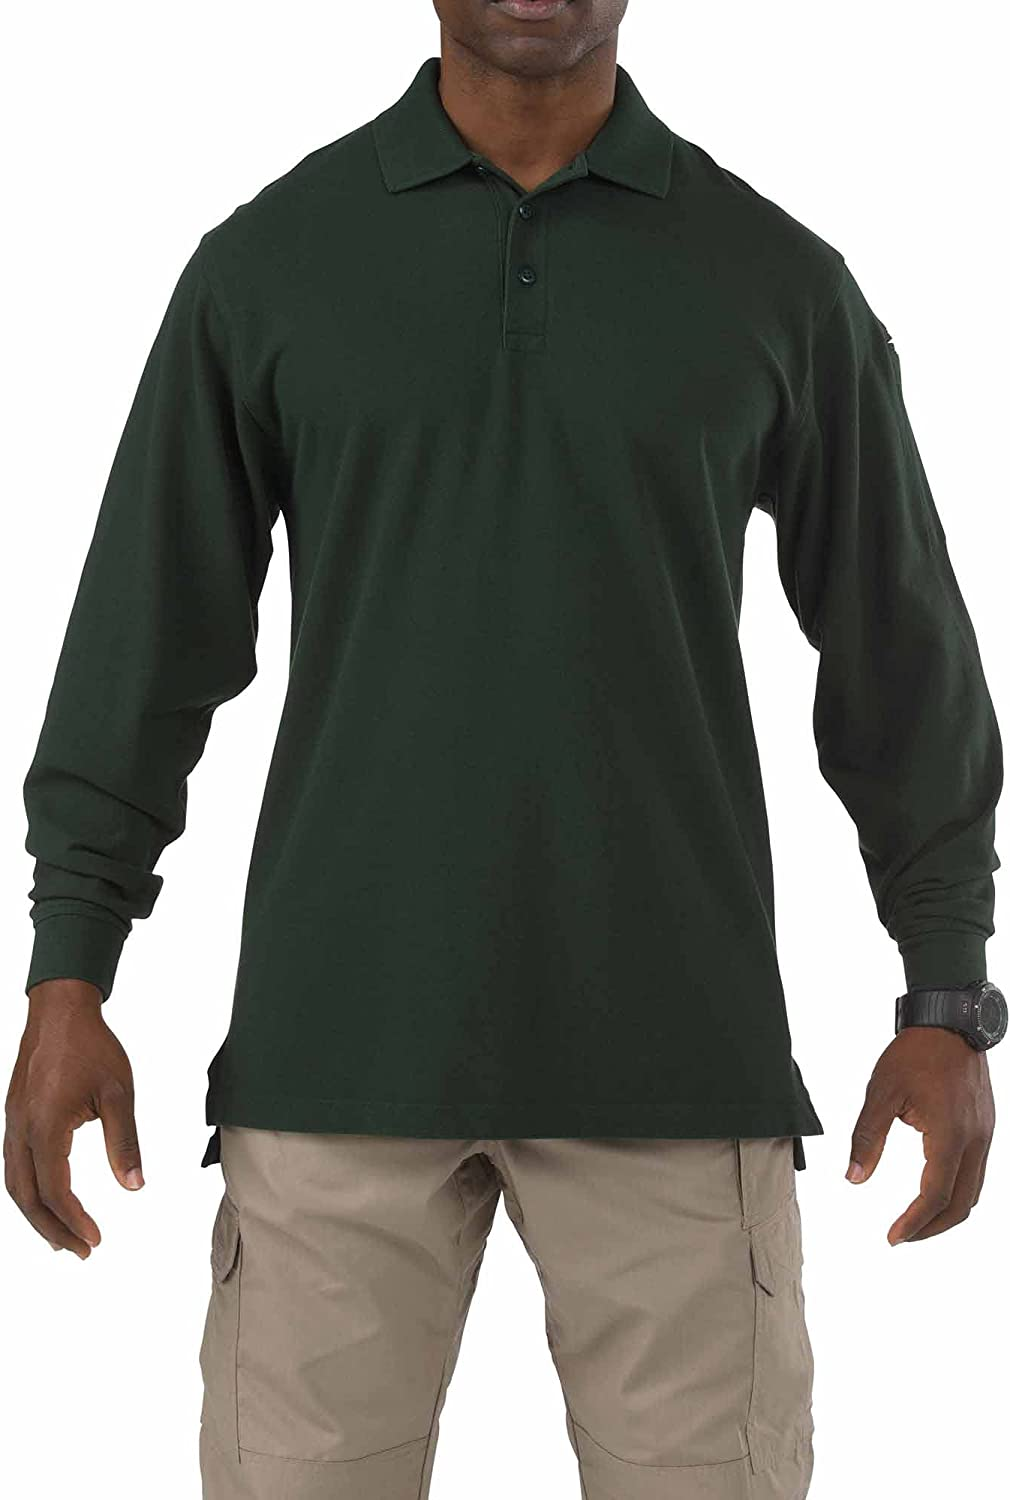 5.11 Tactical Men's Long Reservation Sleeve Professional Polo C Shirt Ranking TOP13 Dress